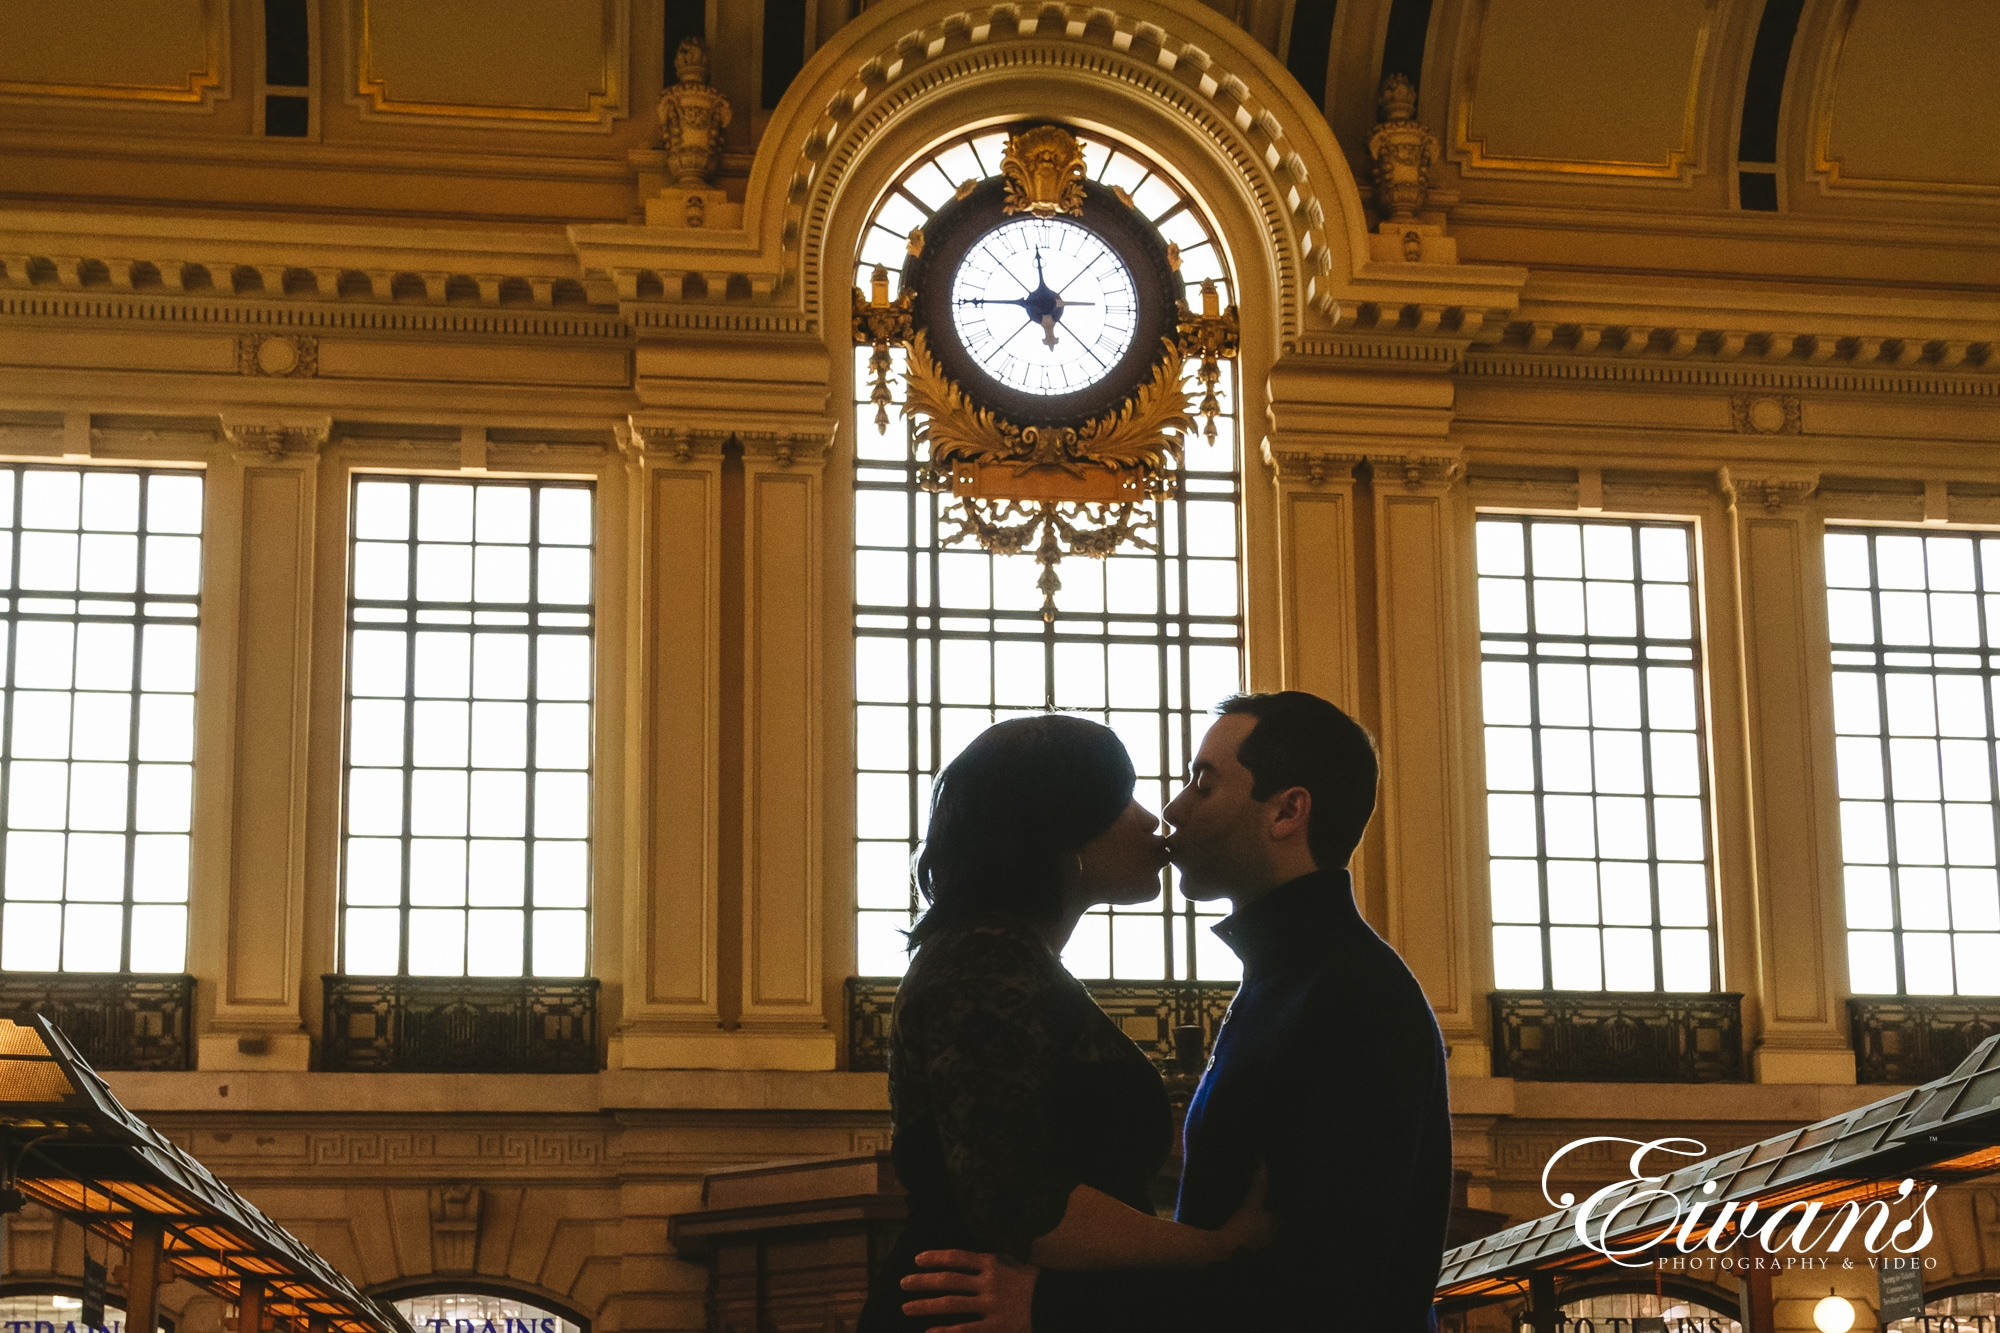 Image of a man and woman kissing in the train station